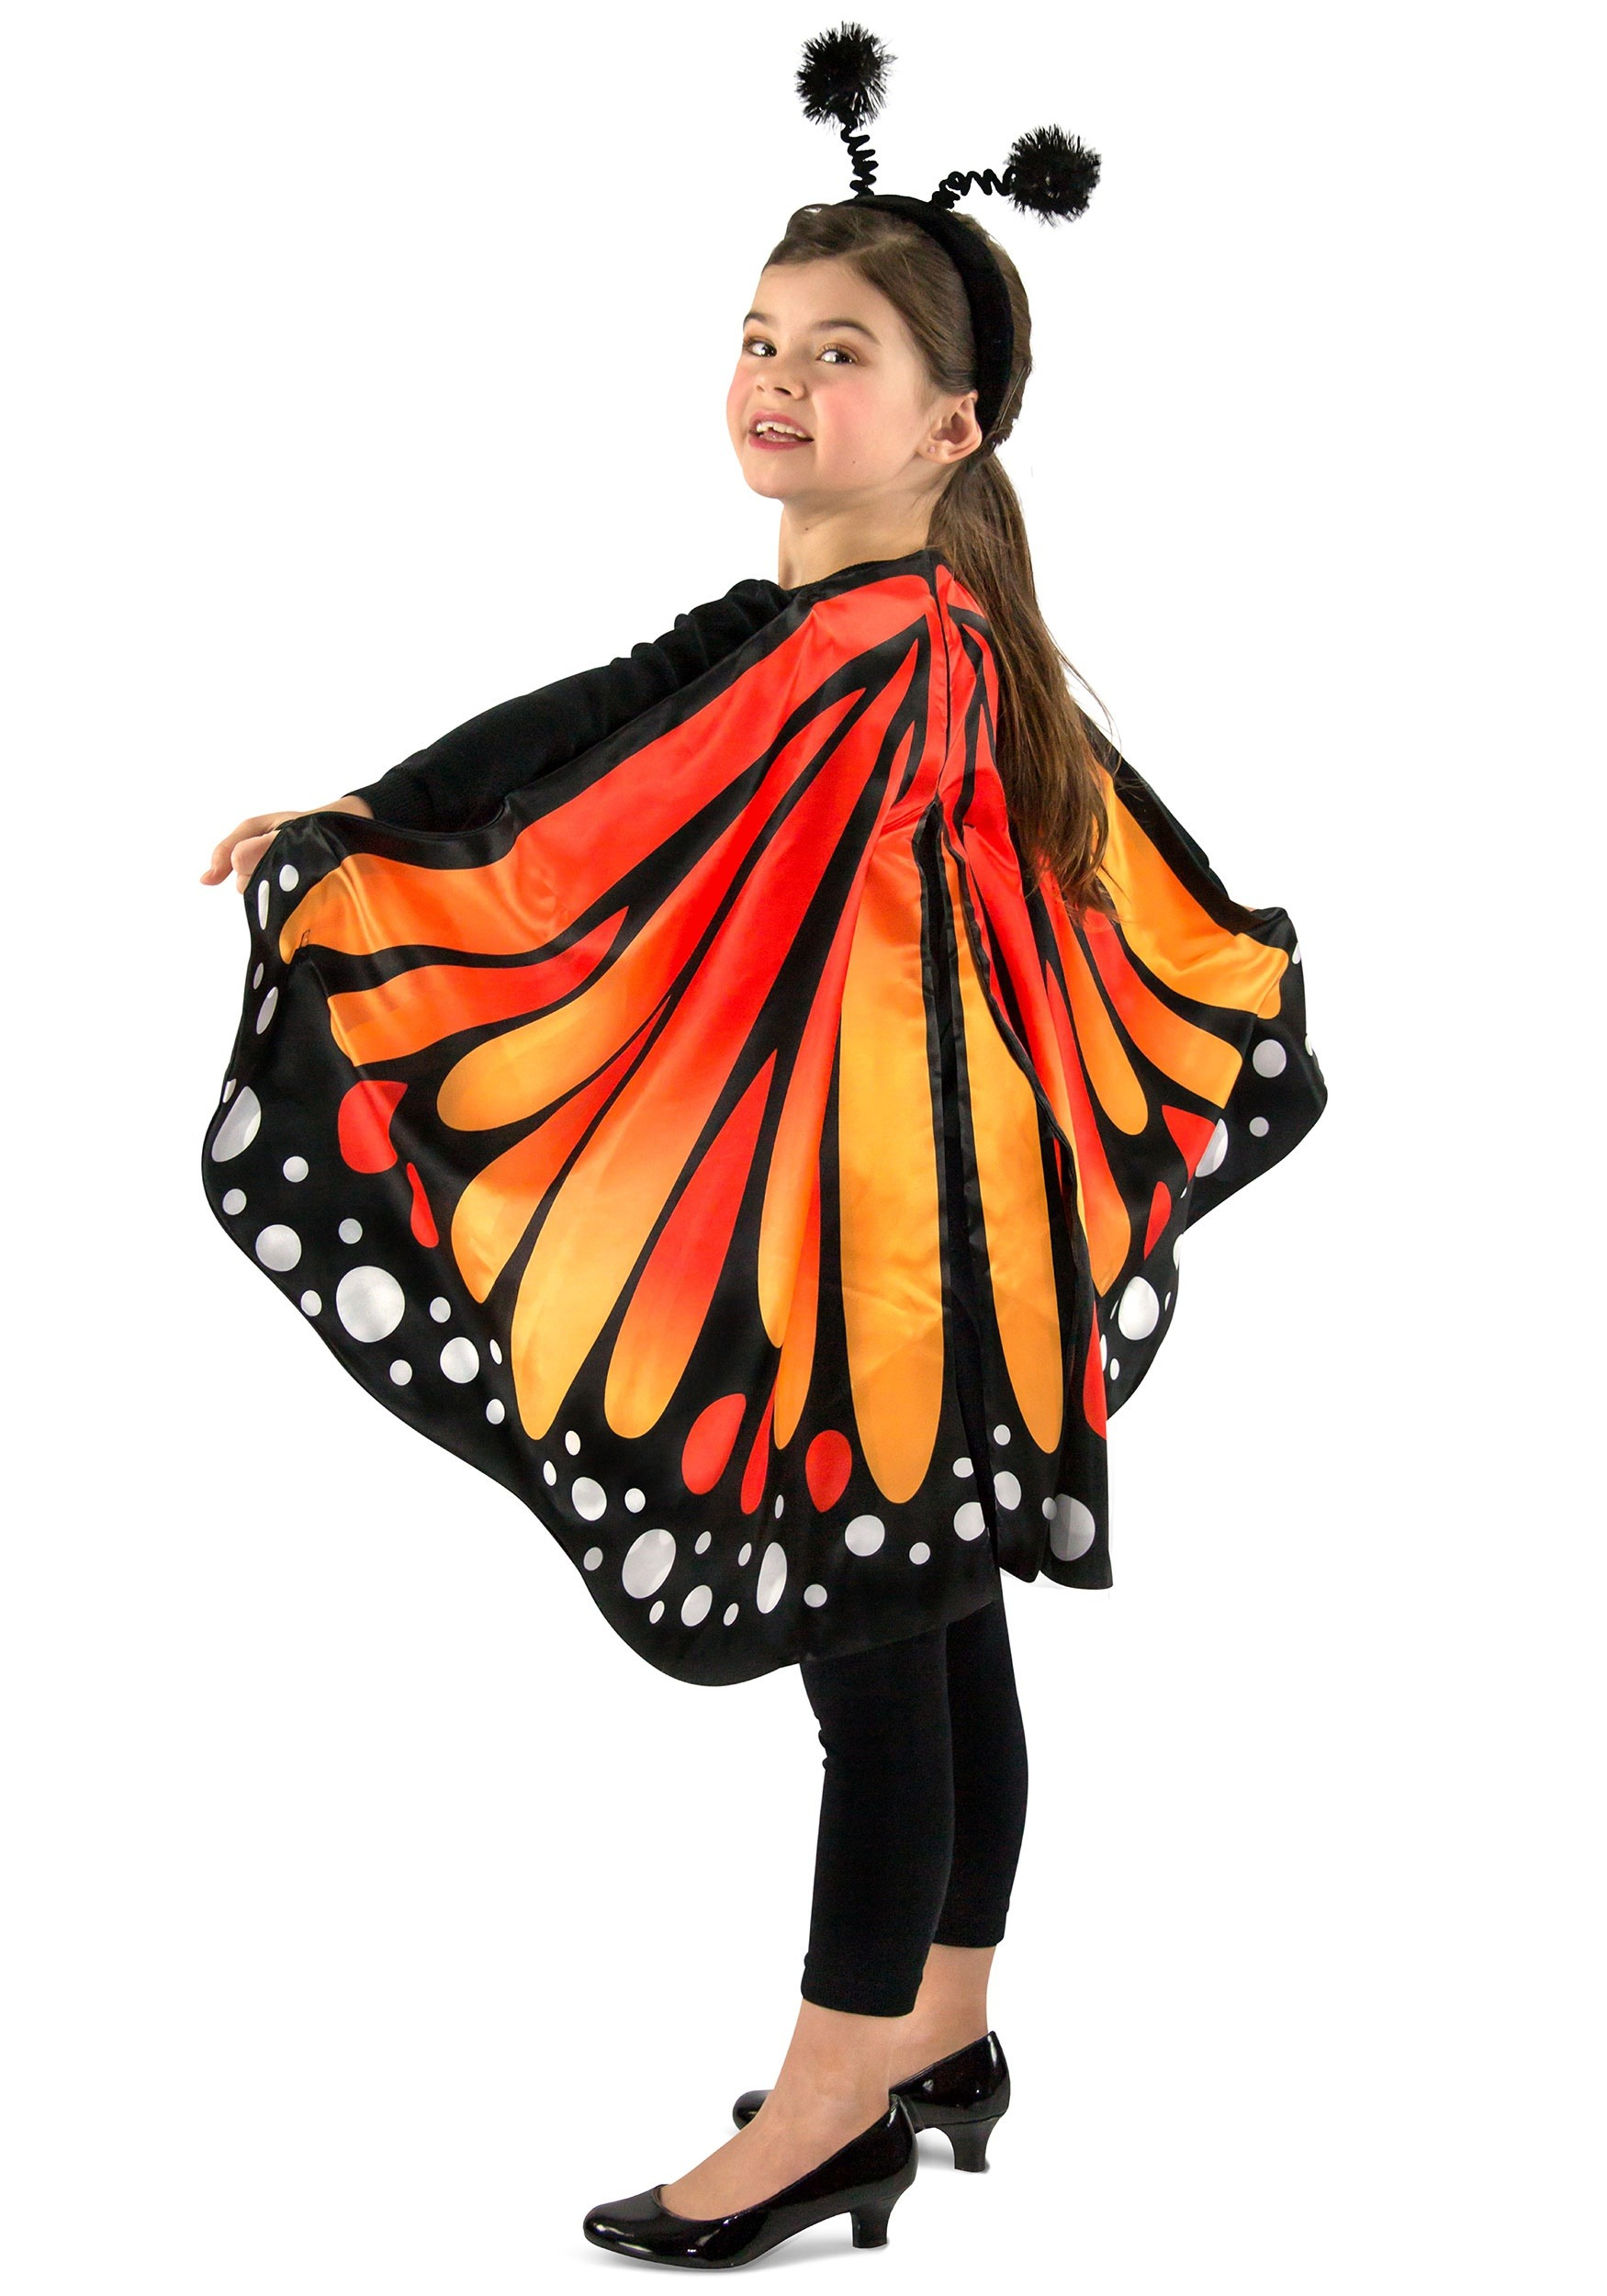 61e393b09d4 Butterfly Costumes - Adult, Toddler Butterfly Halloween Costume